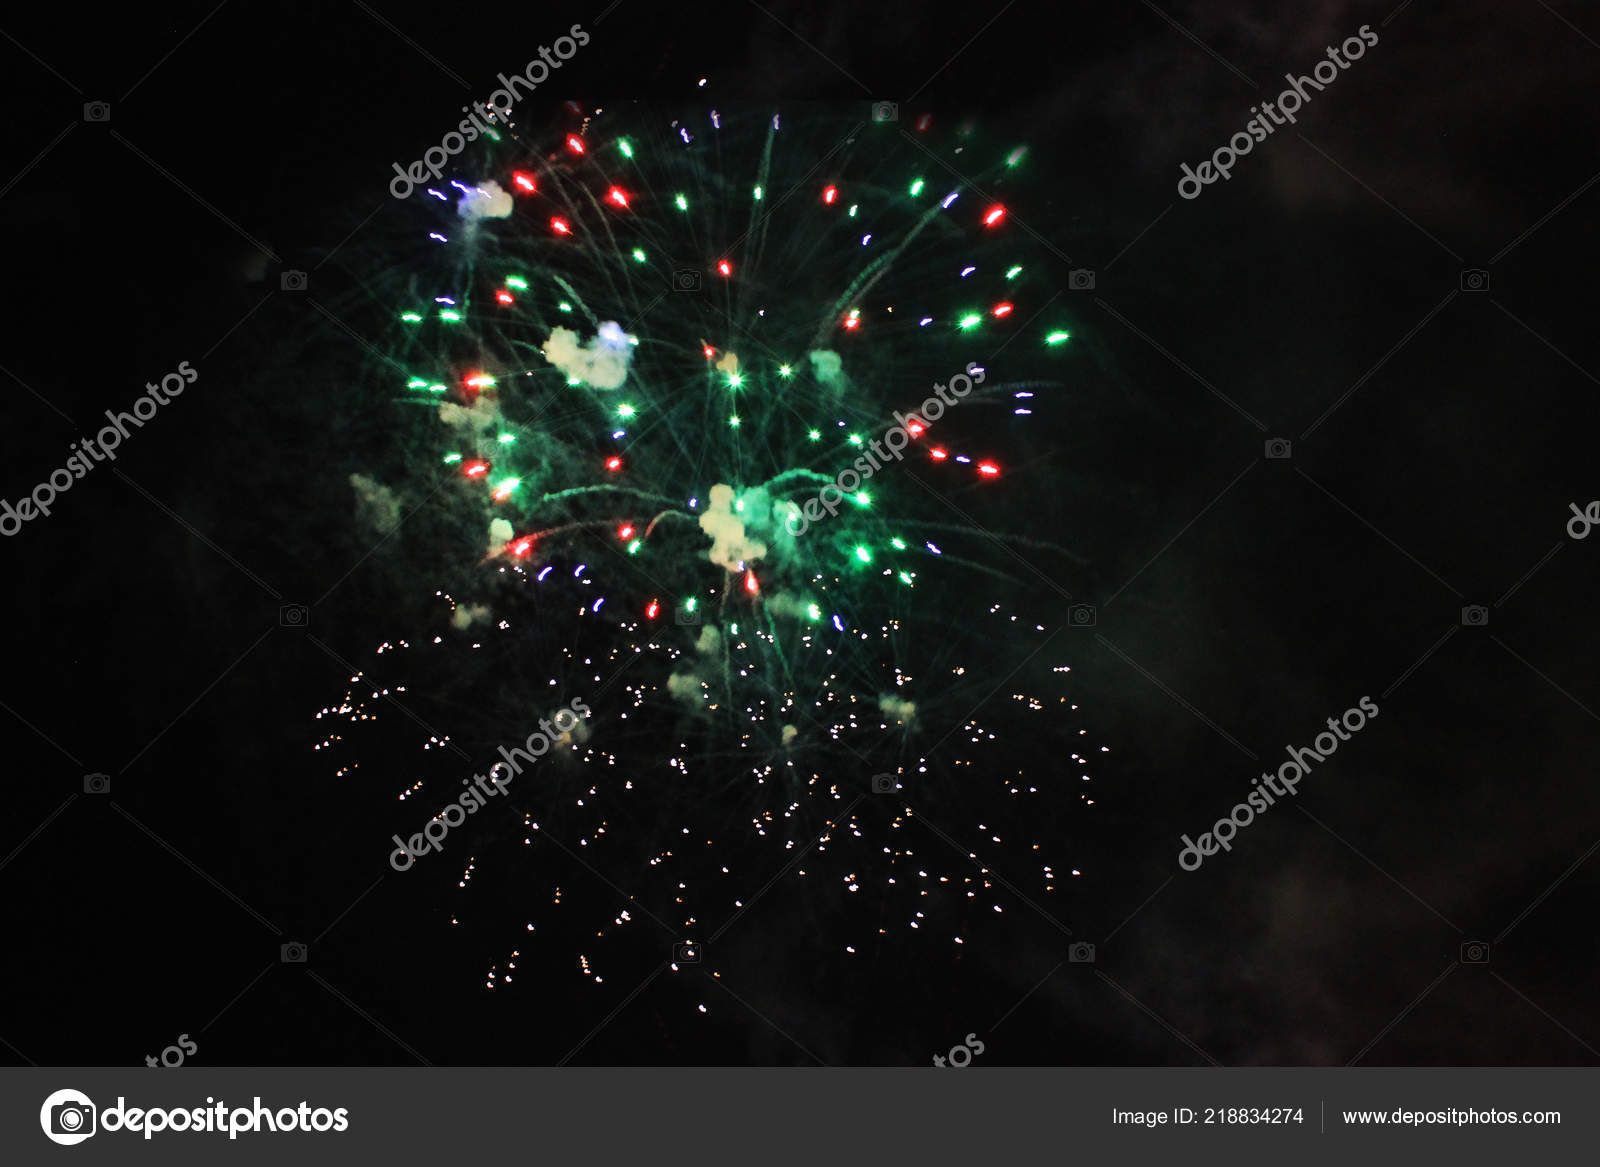 Fireworks Salute Sky Background Amazing Flash Bright Red